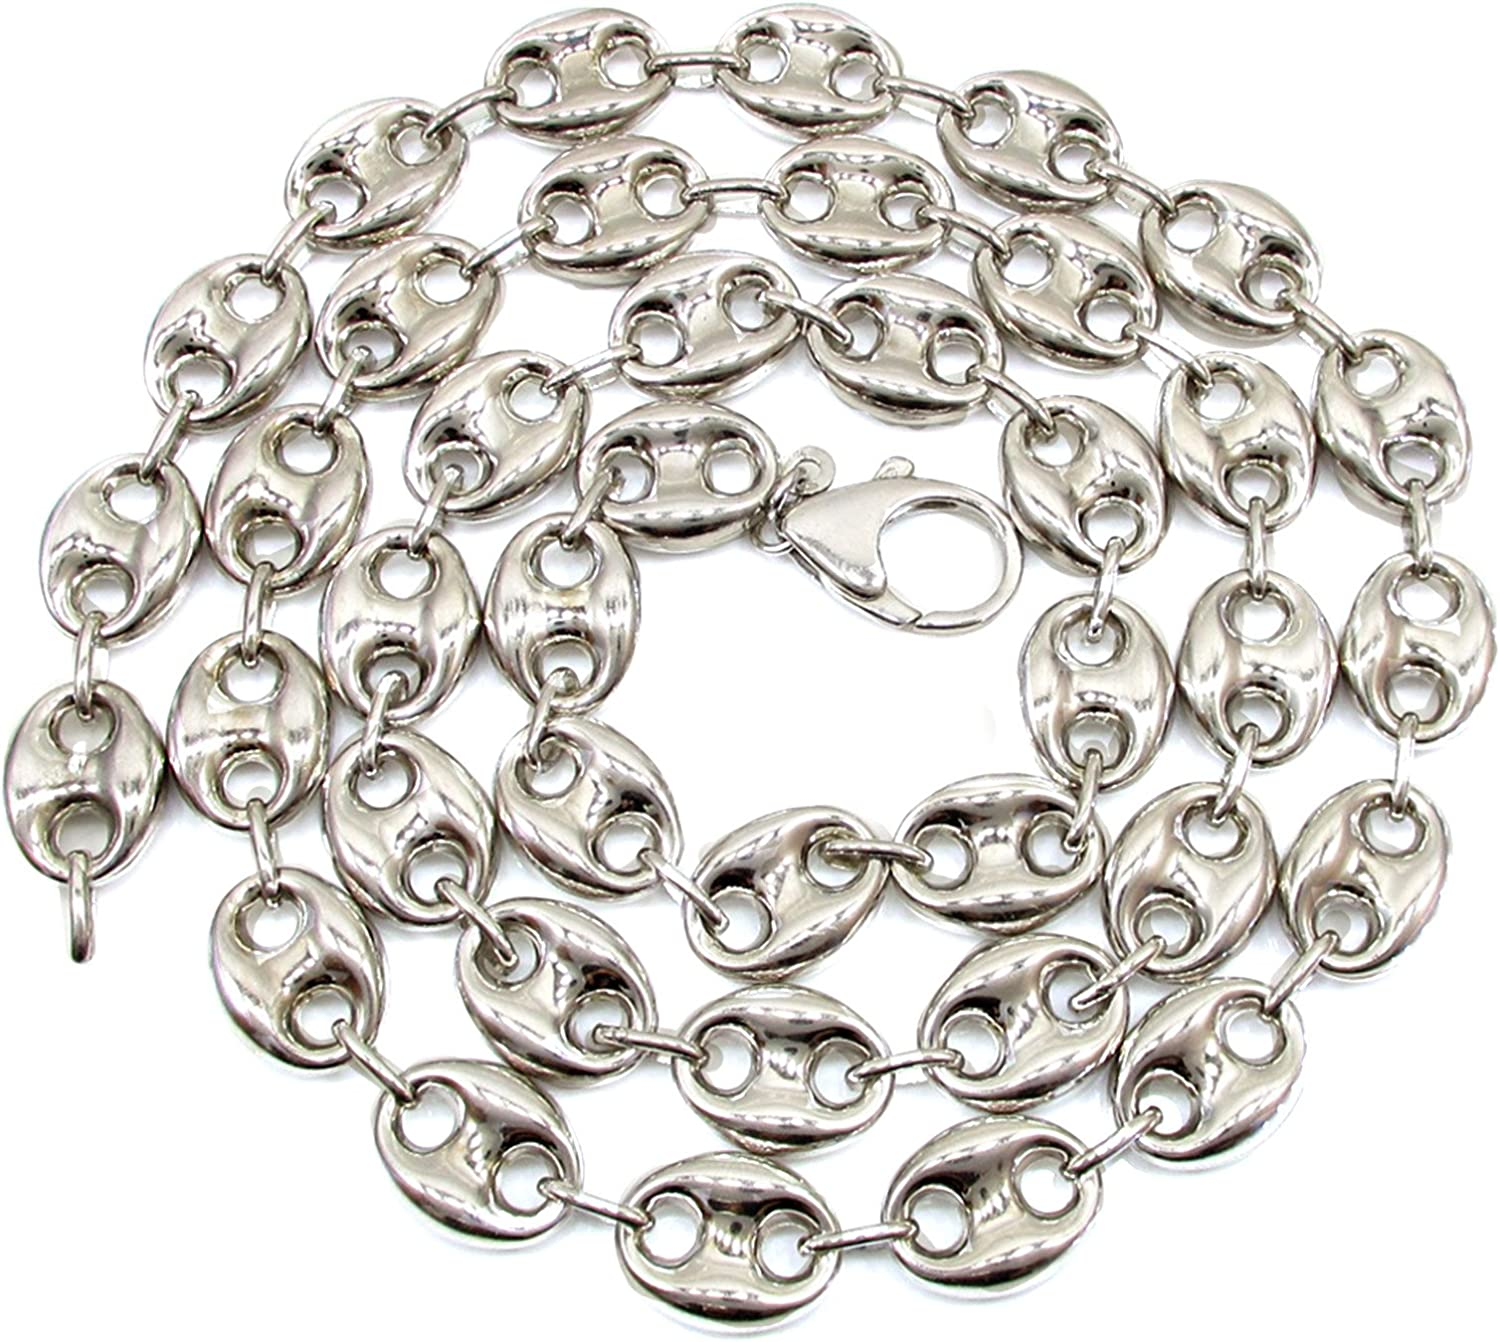 Chain Necklace or Bracelet Mariner Marina Sterling Silver 3mm Flat Anchor